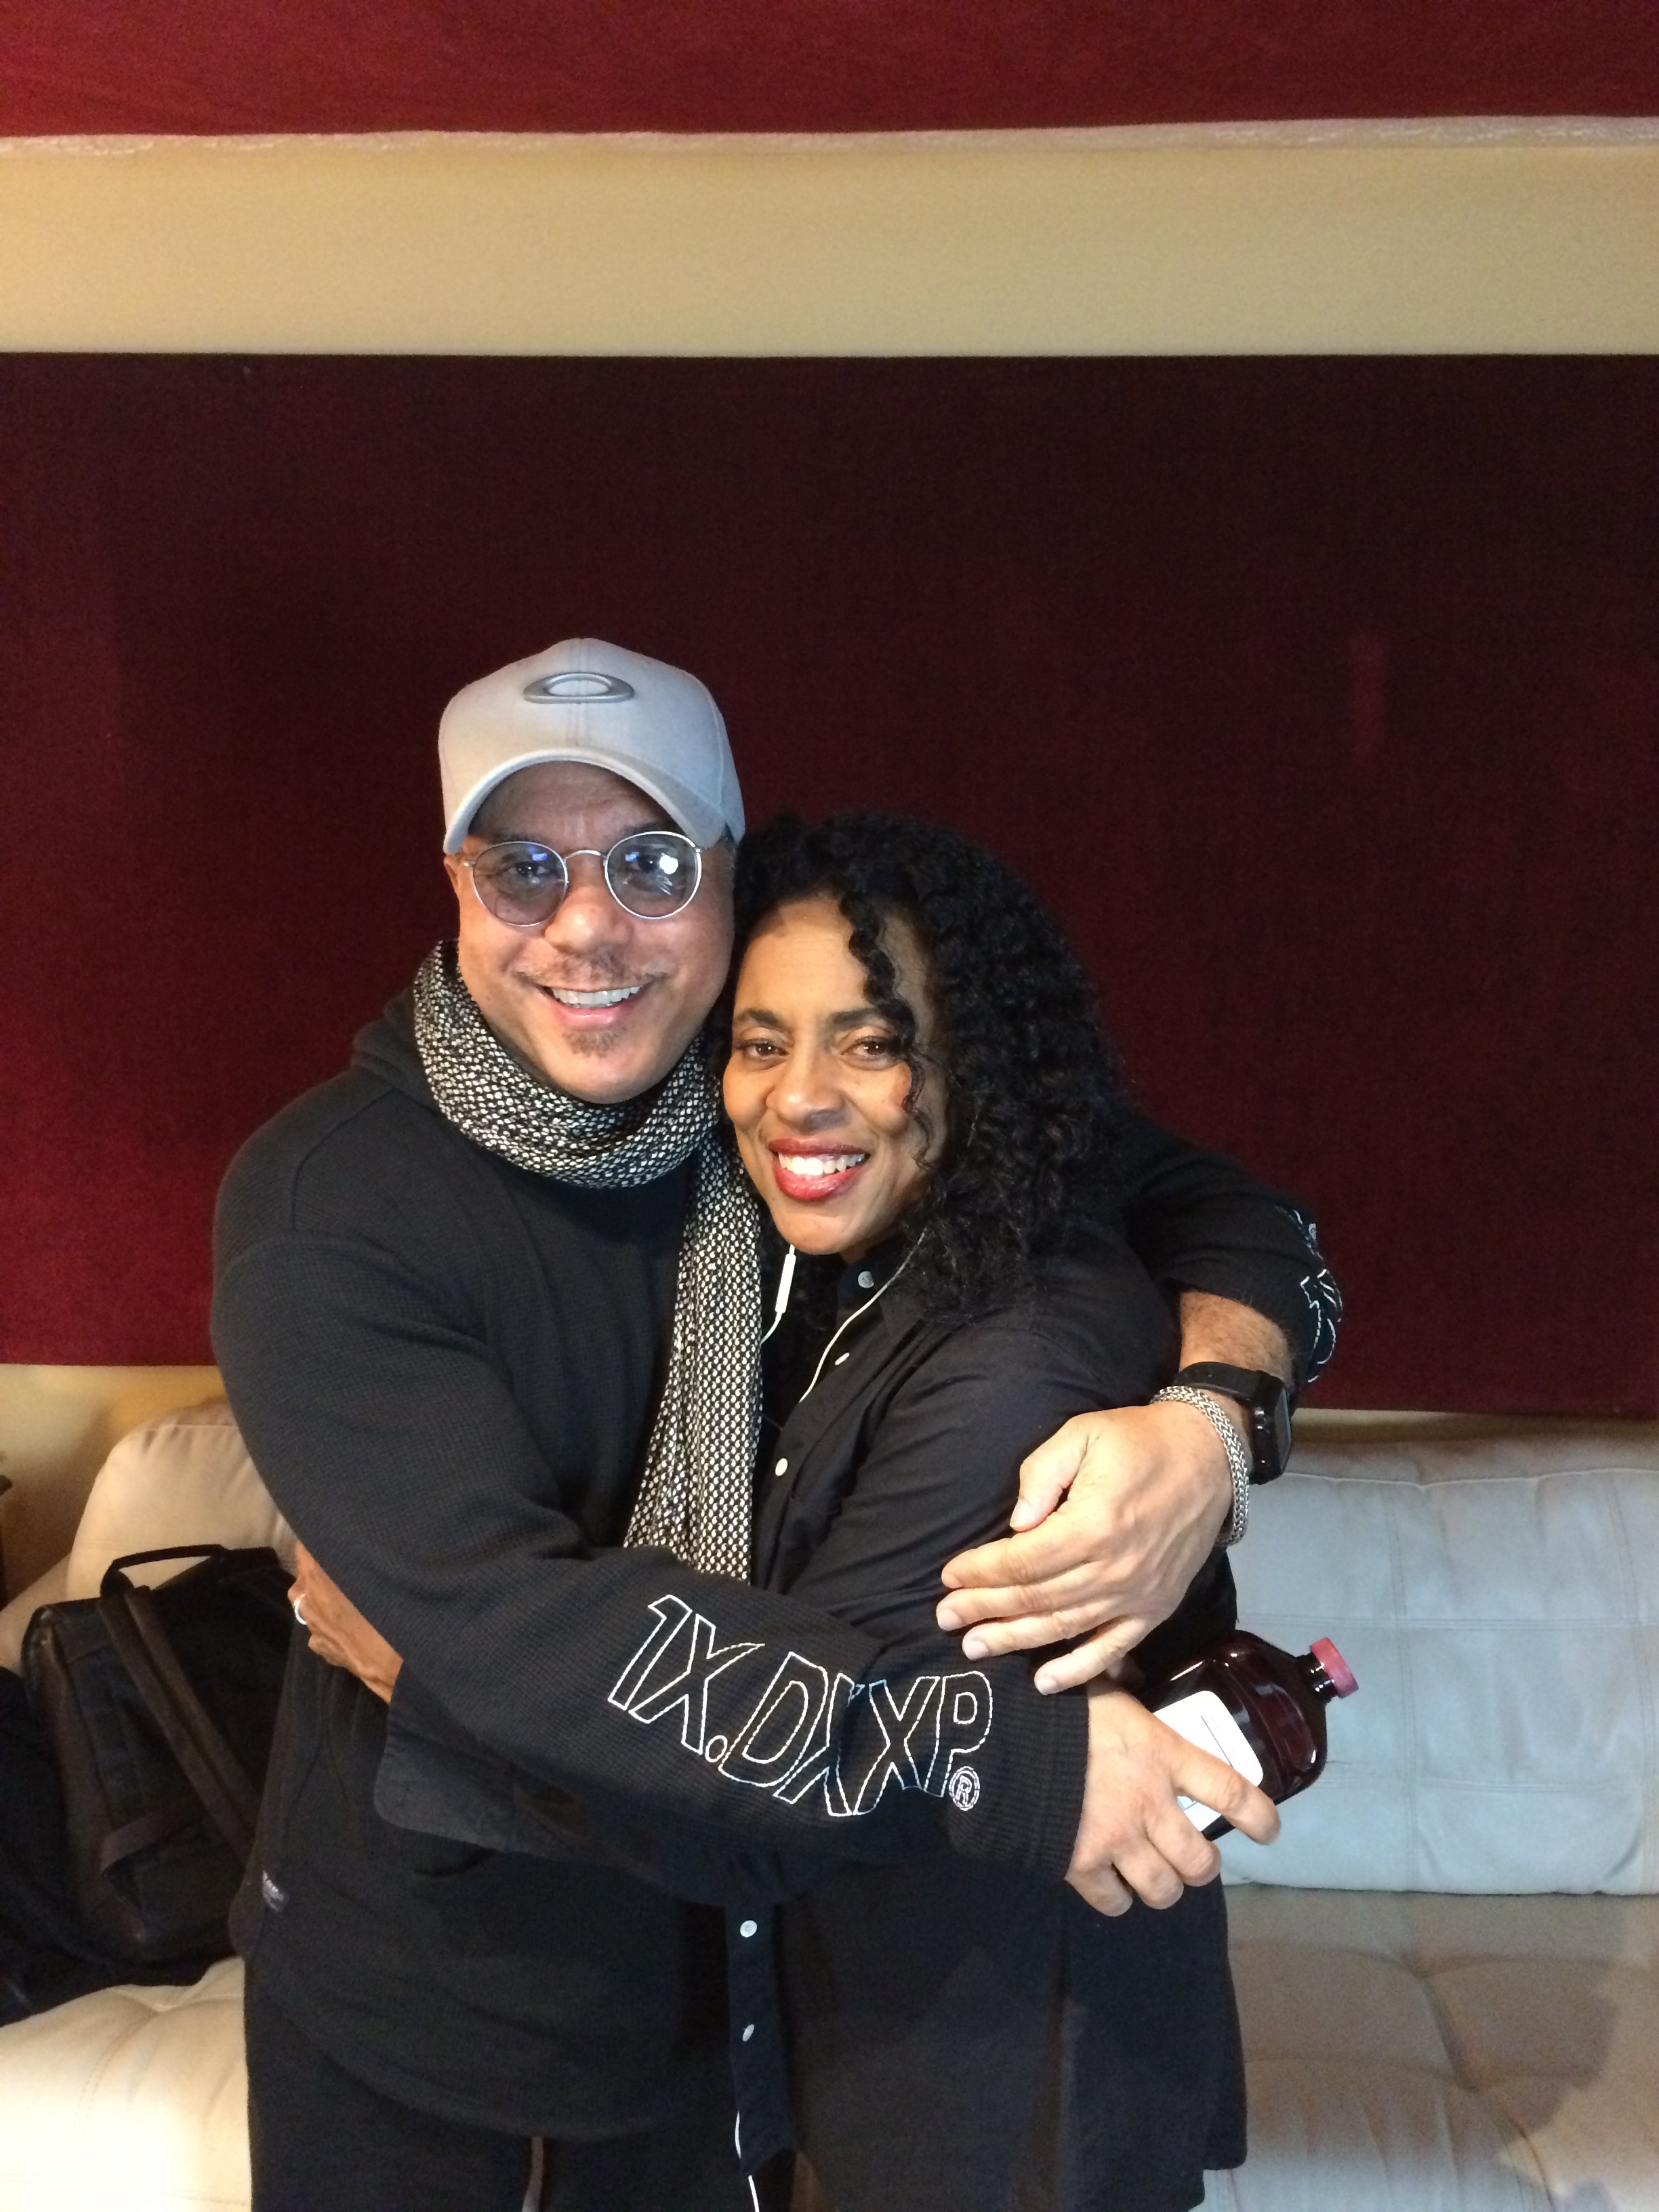 About Joyce Irby & Howard Hewett